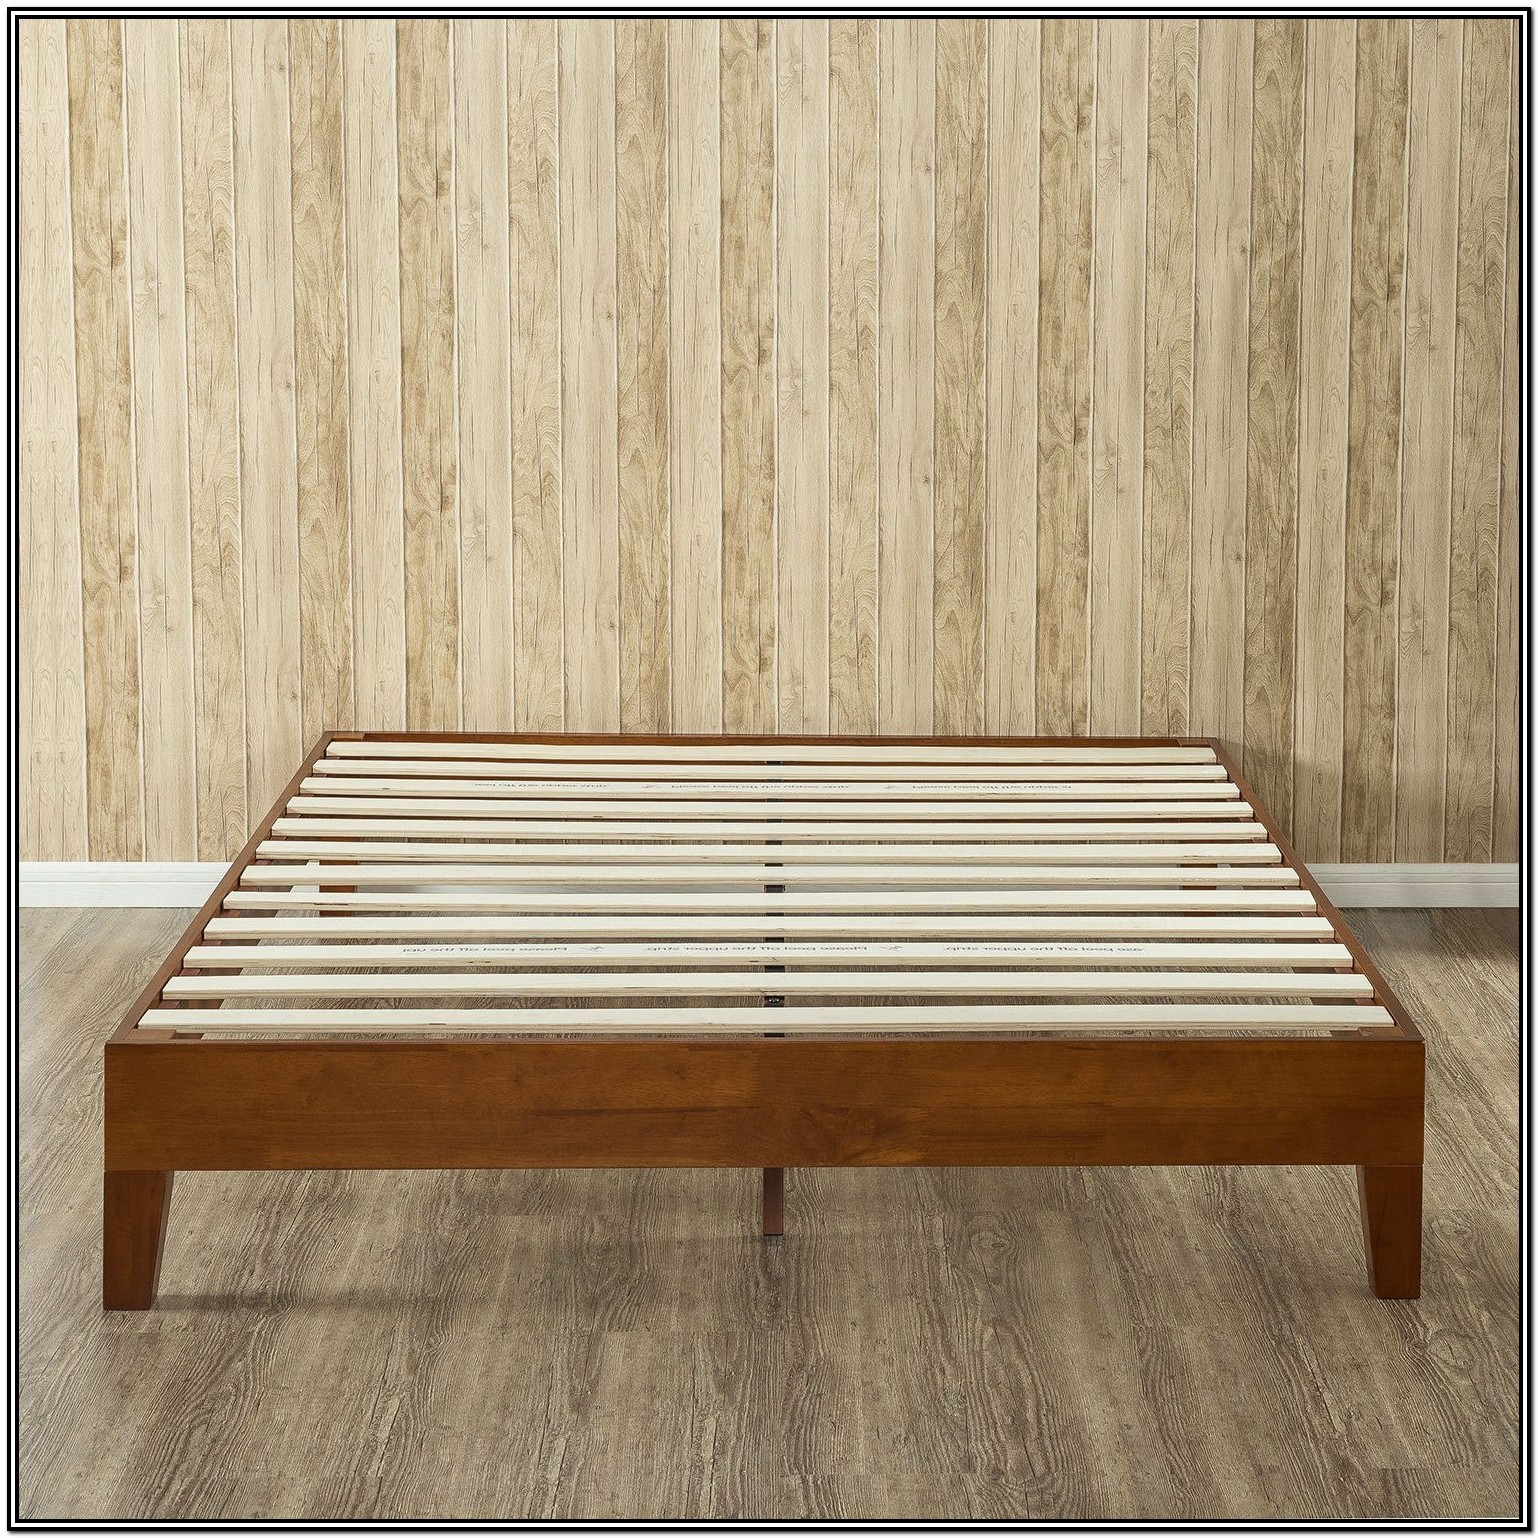 Low Profile Wood Bed Frame King